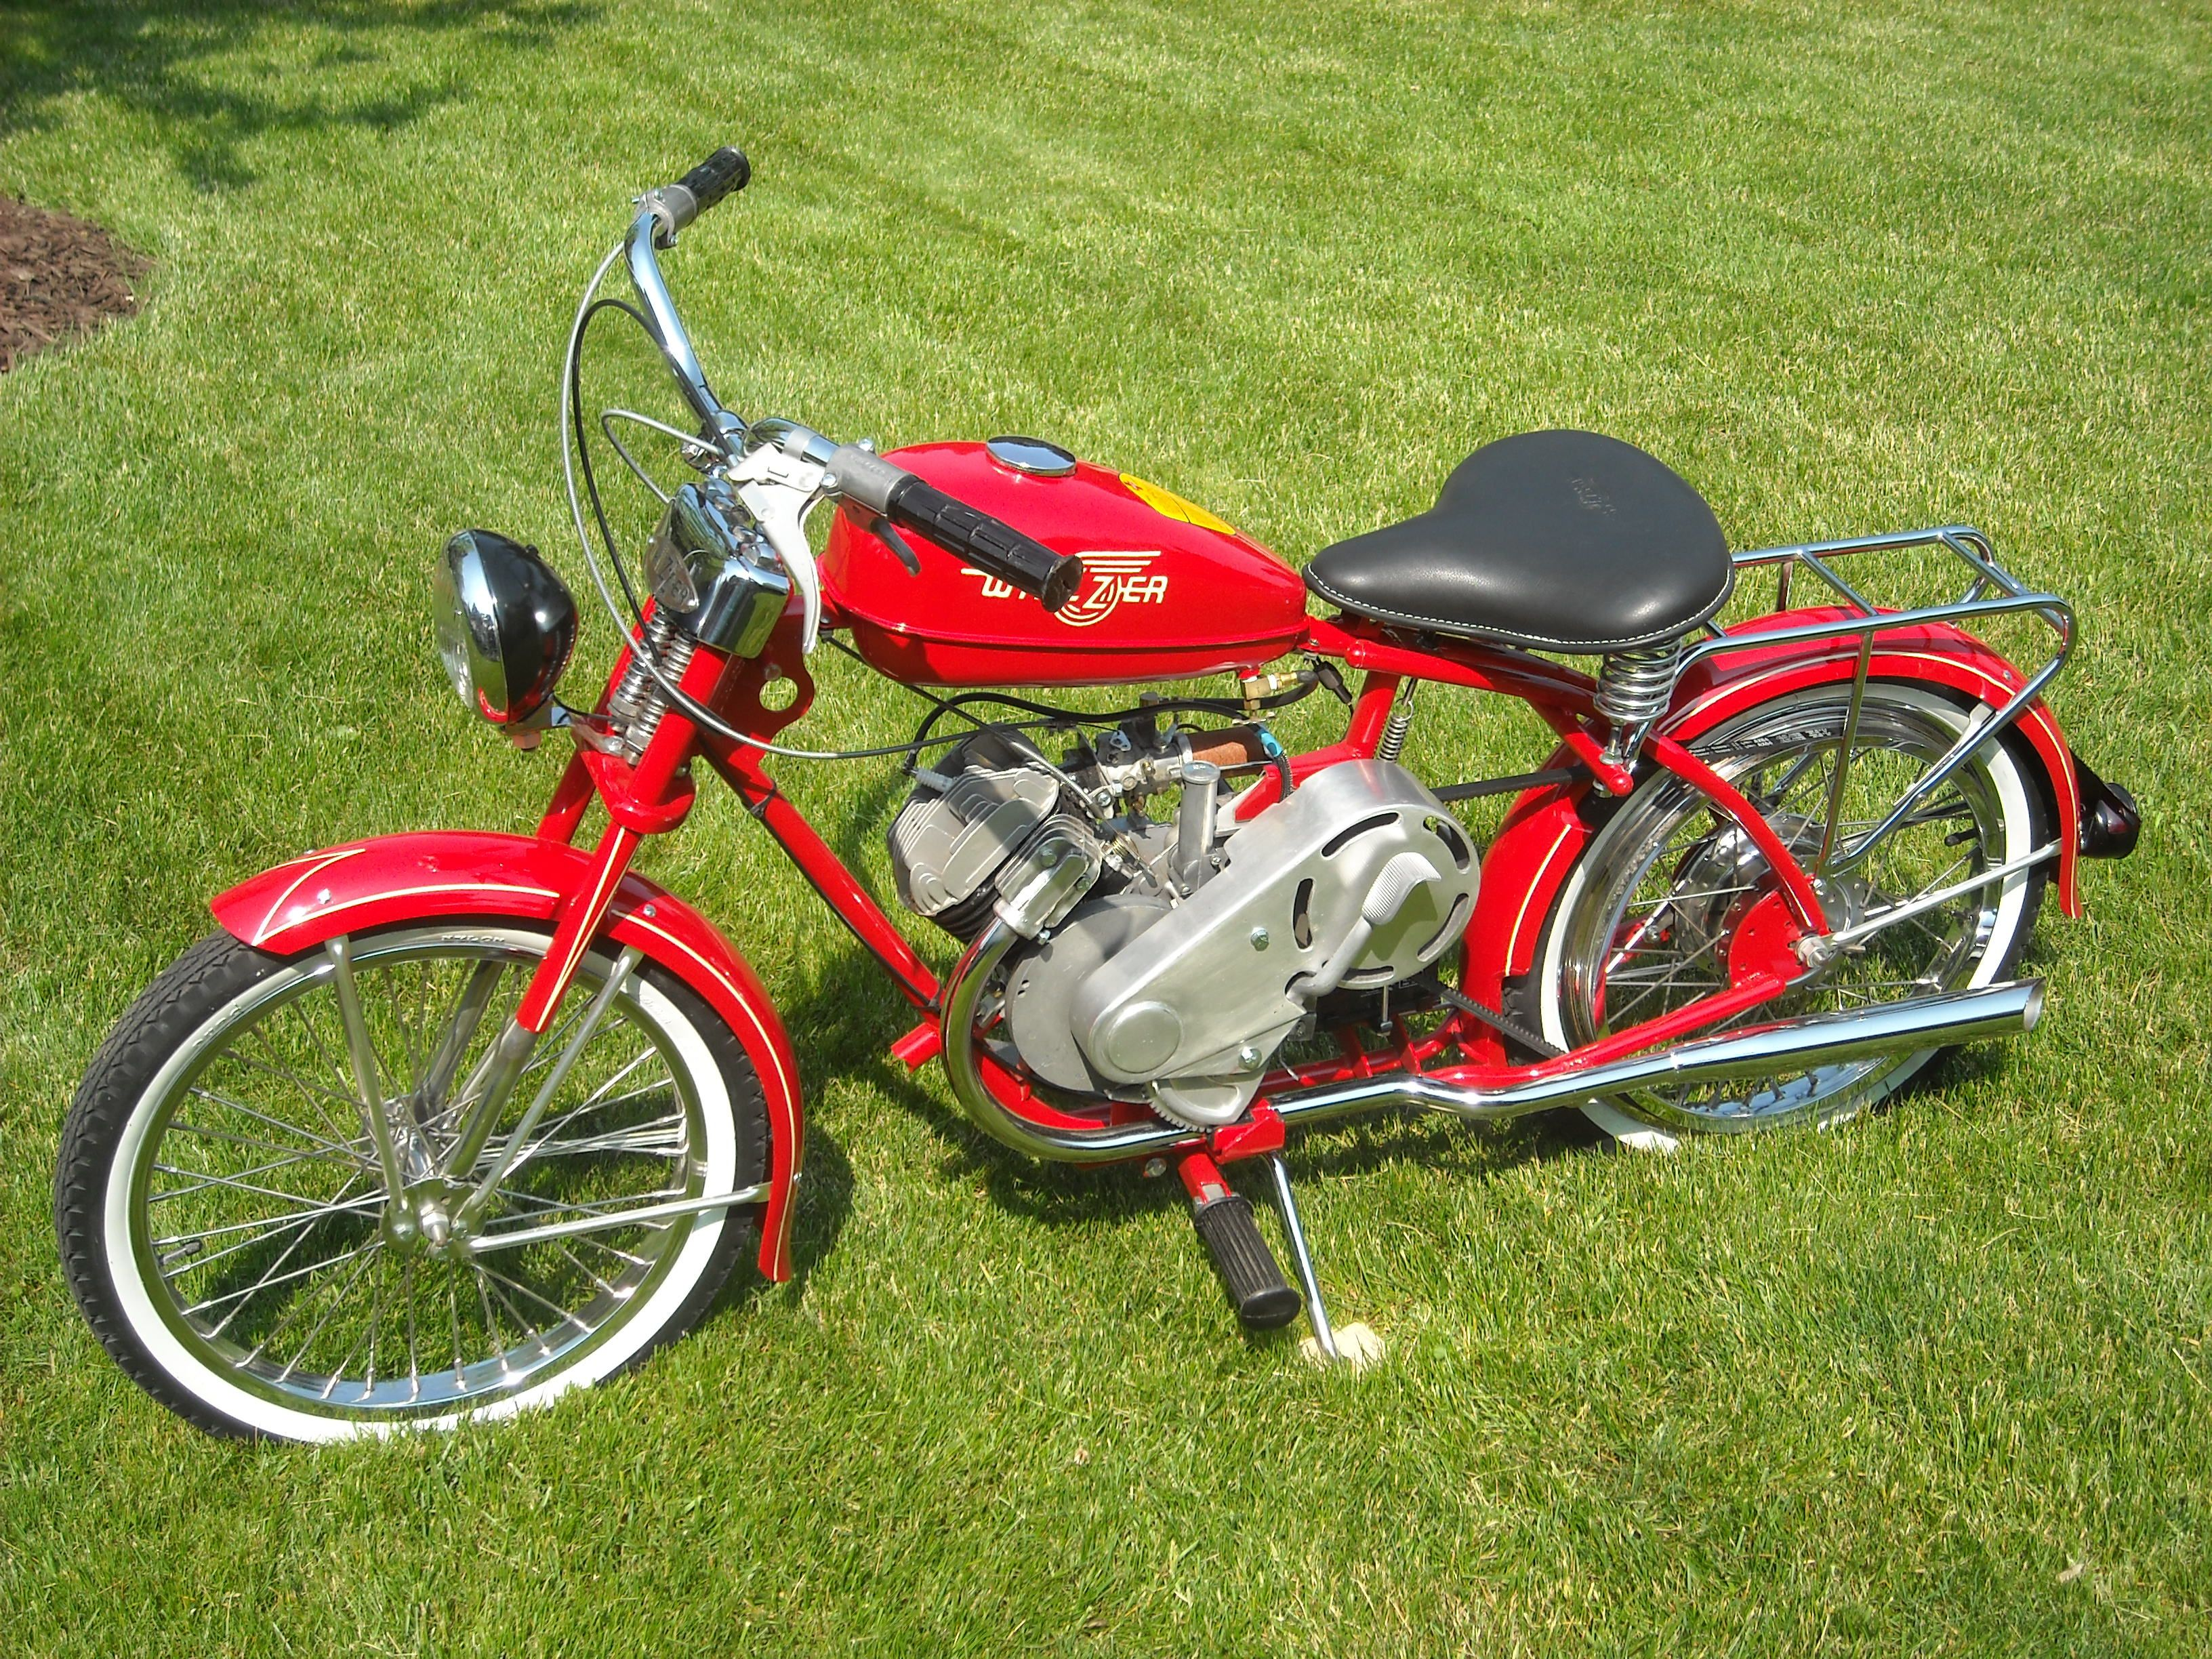 1952 Whizzer Sportsman 20 Wheels Wanted One Of These In High School Too Many Dollars Settled For A Mona Motorcycle Motorized Bicycle Classic Motorcycles